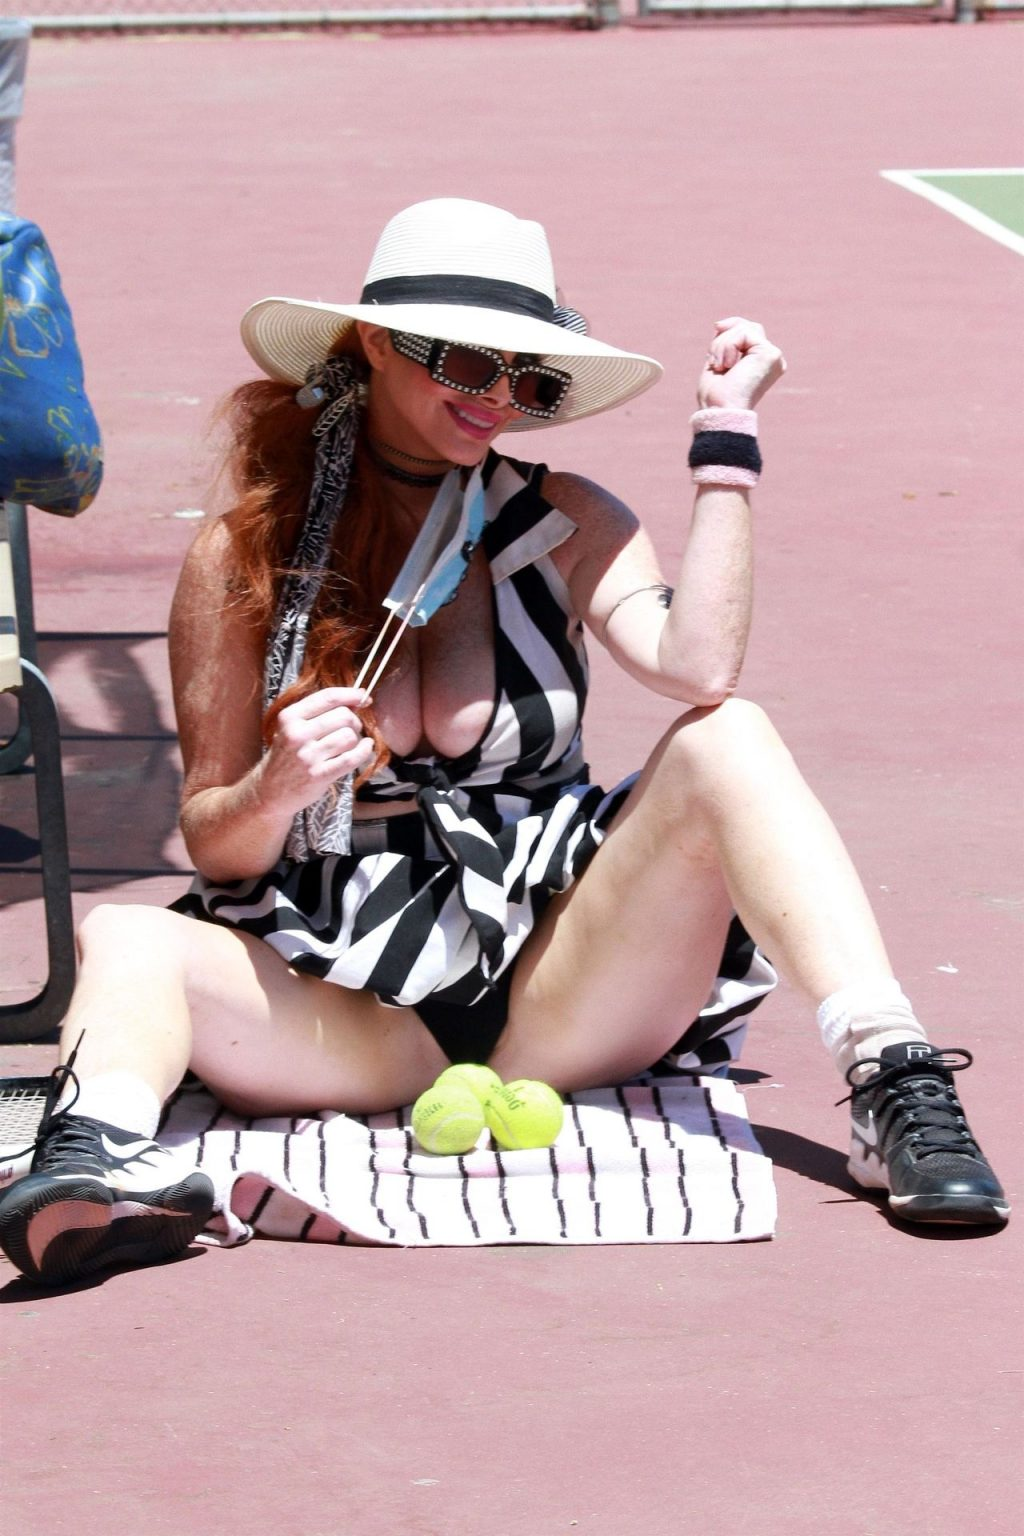 Phoebe Price Shows Off Her Stretching Skills in LA (71 Photos)